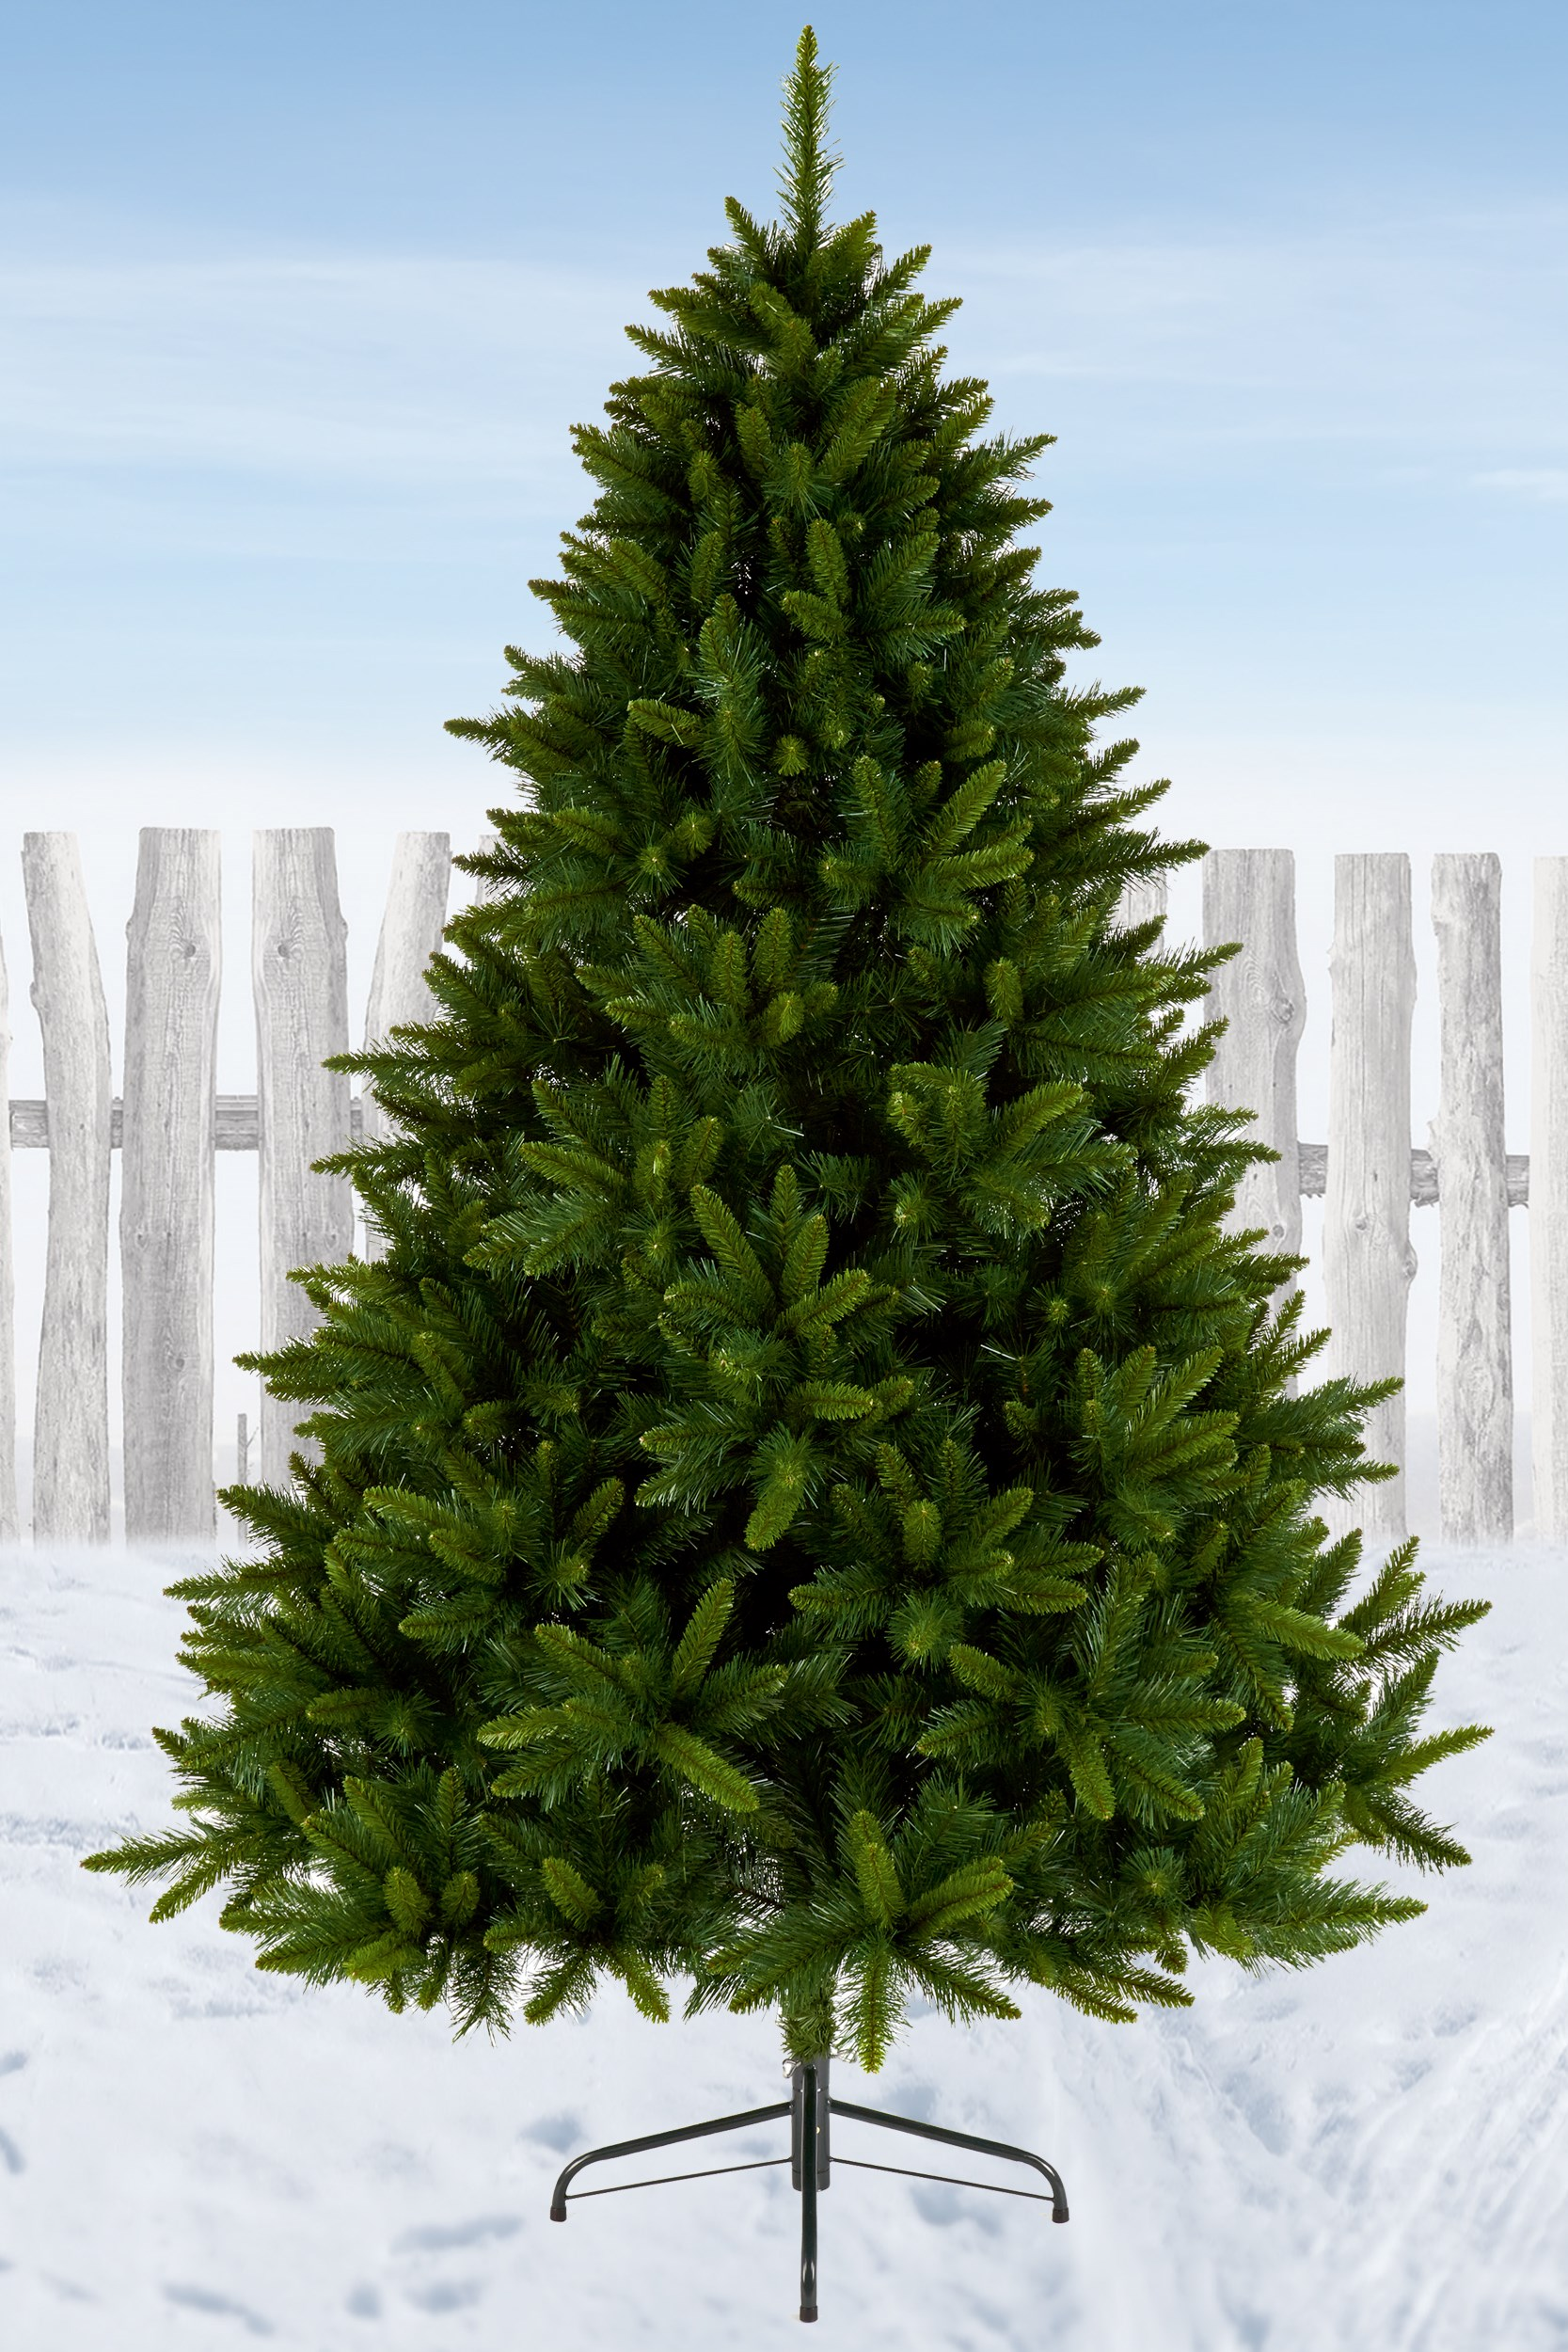 Where Can I Buy A Artificial Christmas Tree